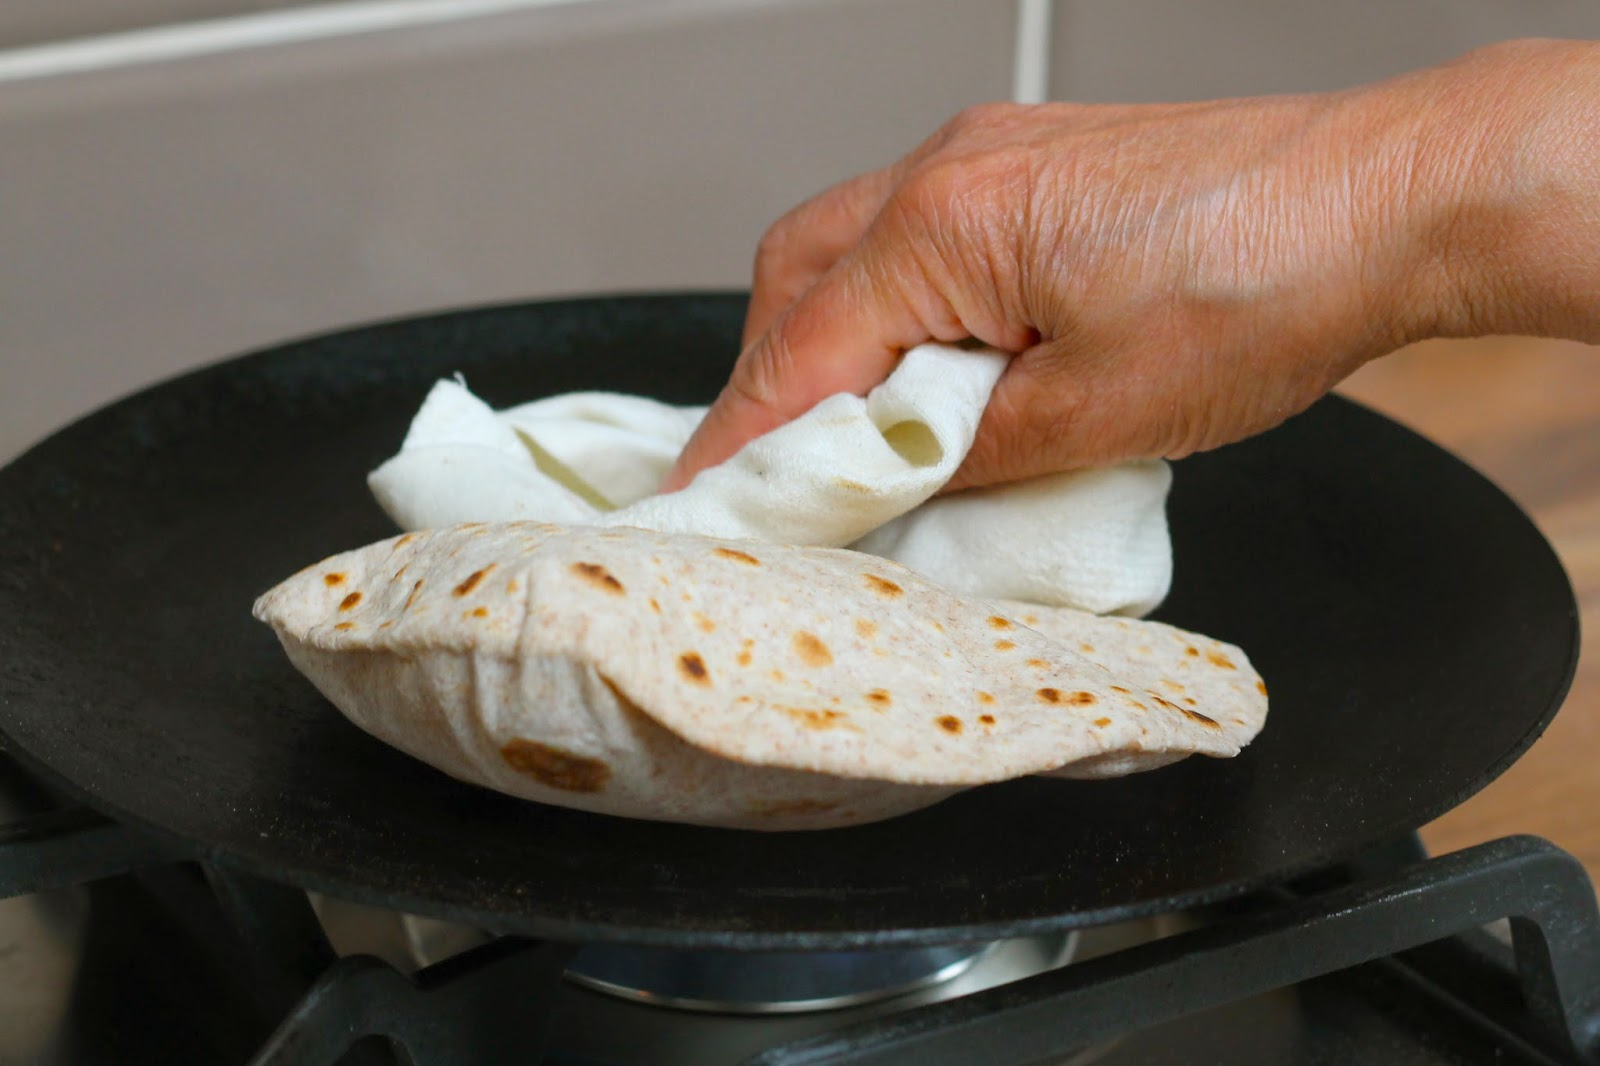 Encouraging the roti to puff up